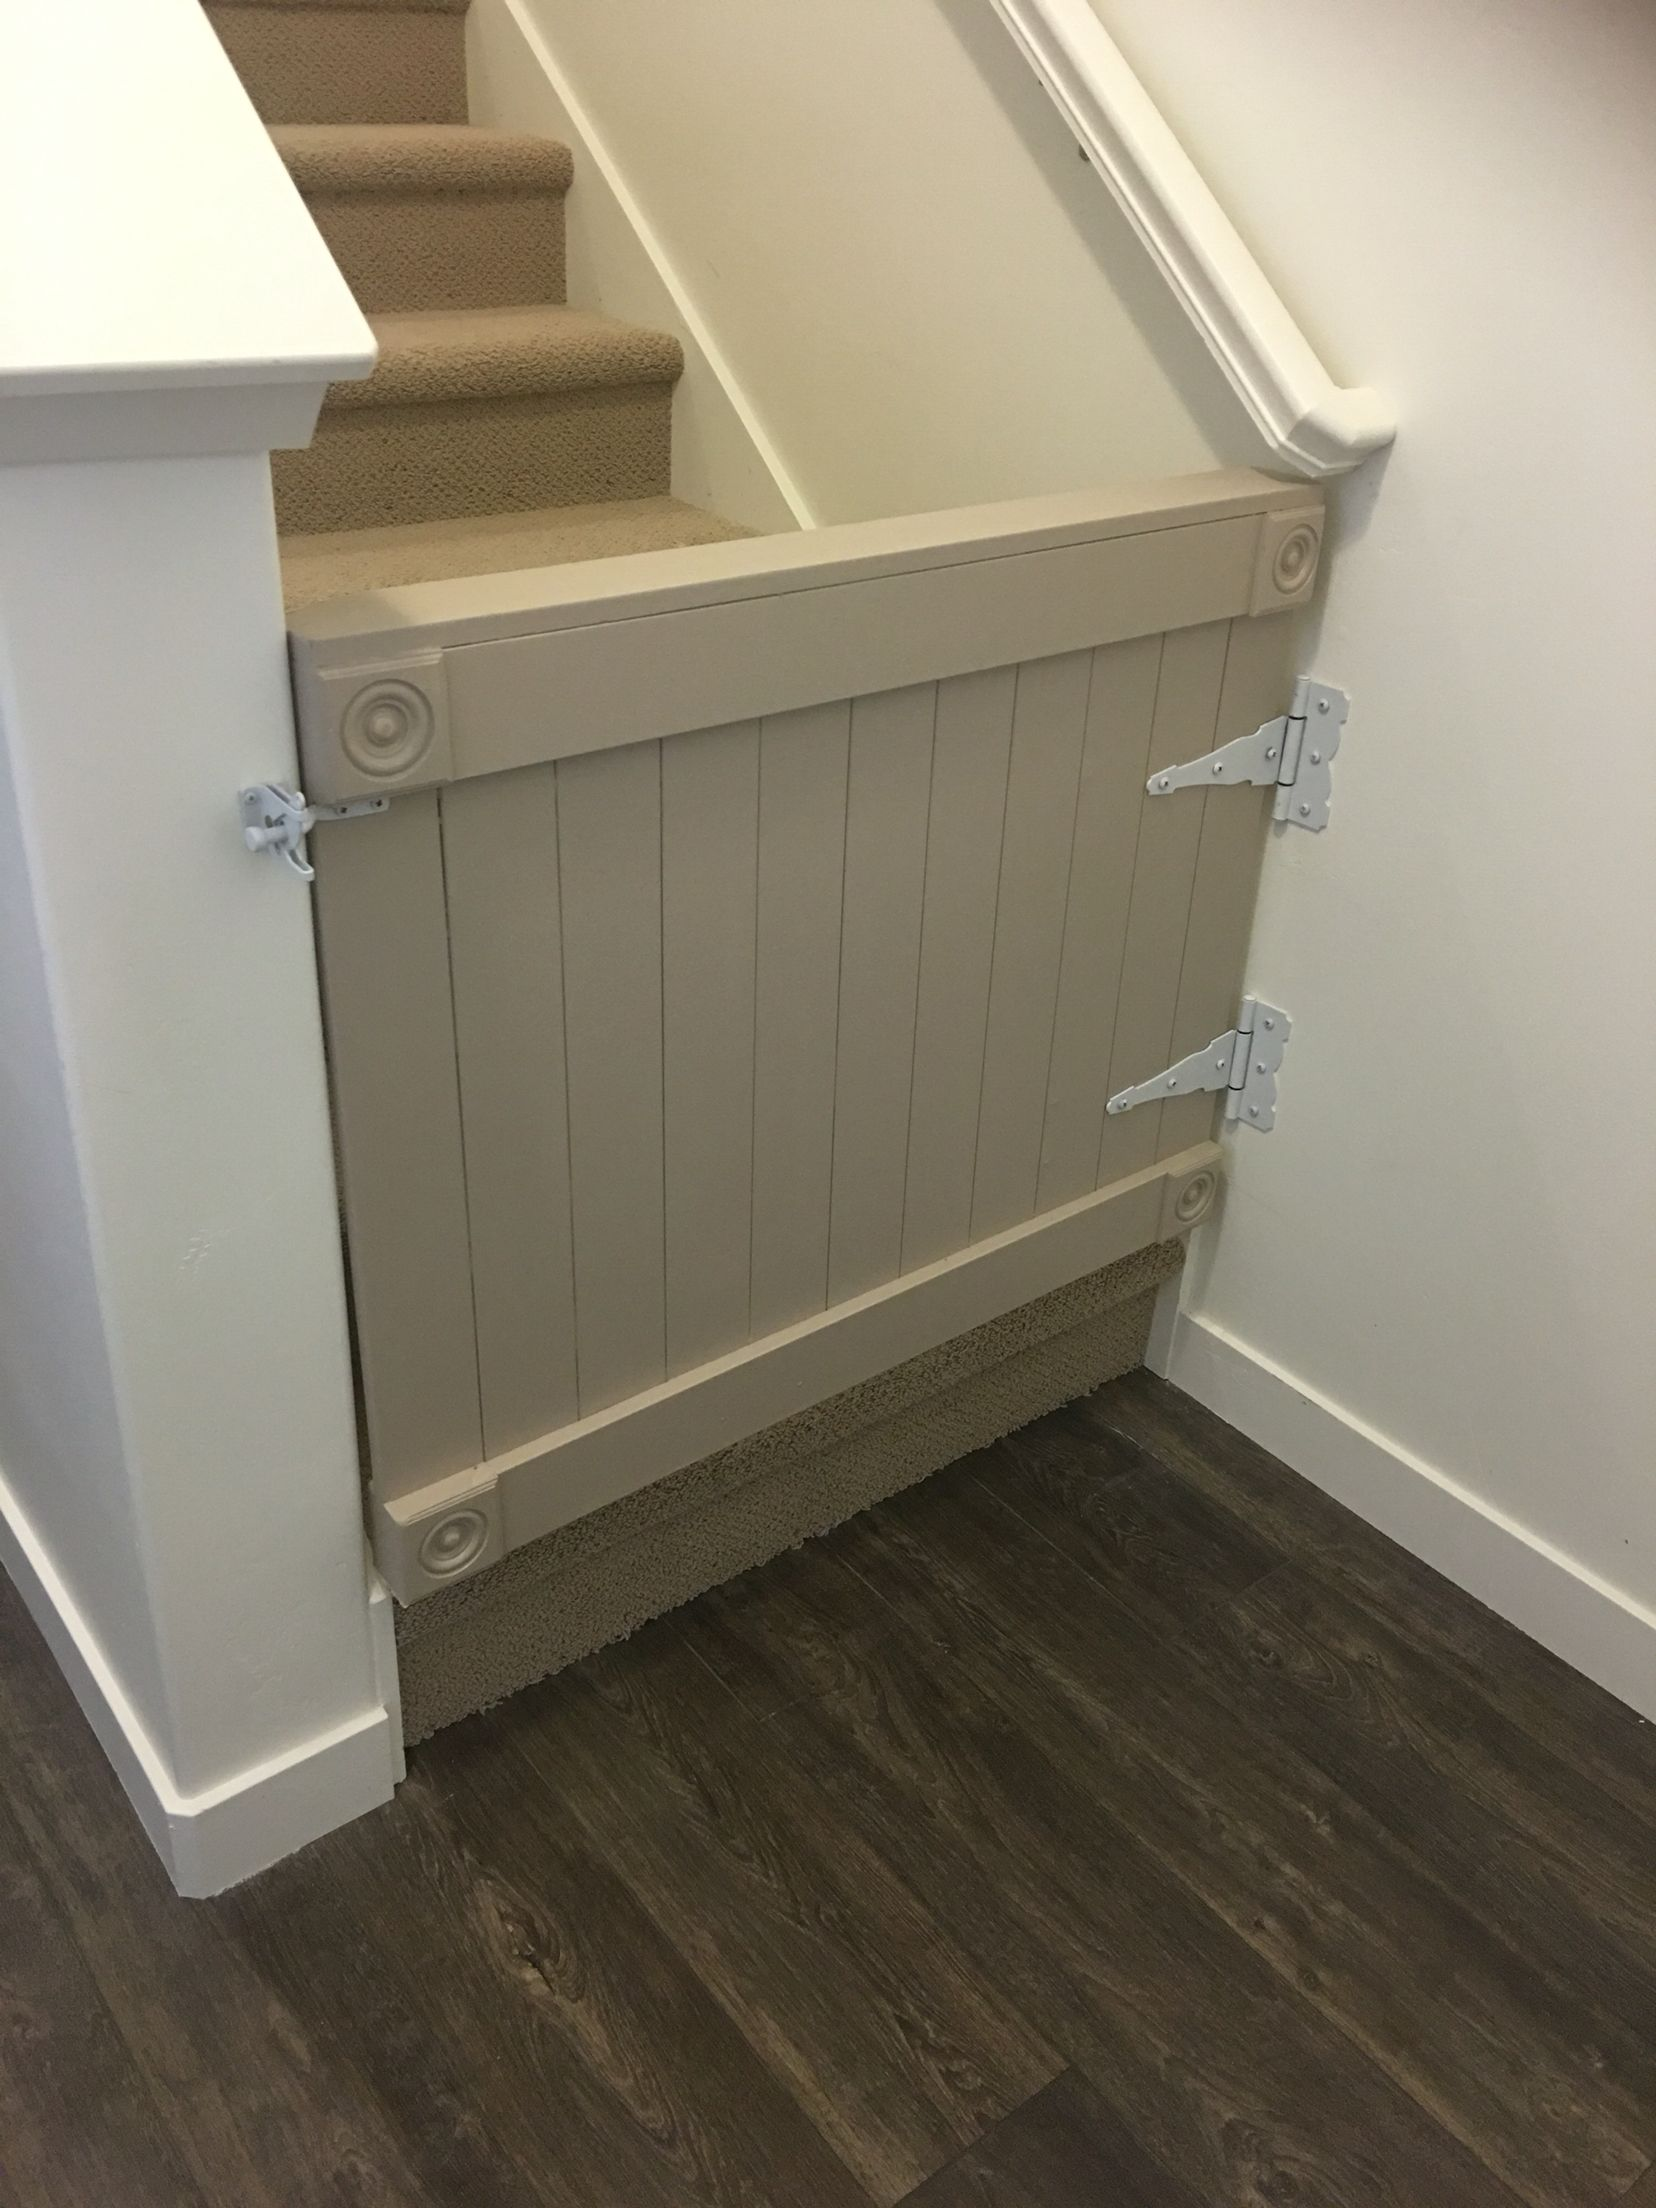 Diy Baby Gate Made From Mdf And Added Decorative Corners Hard Ware